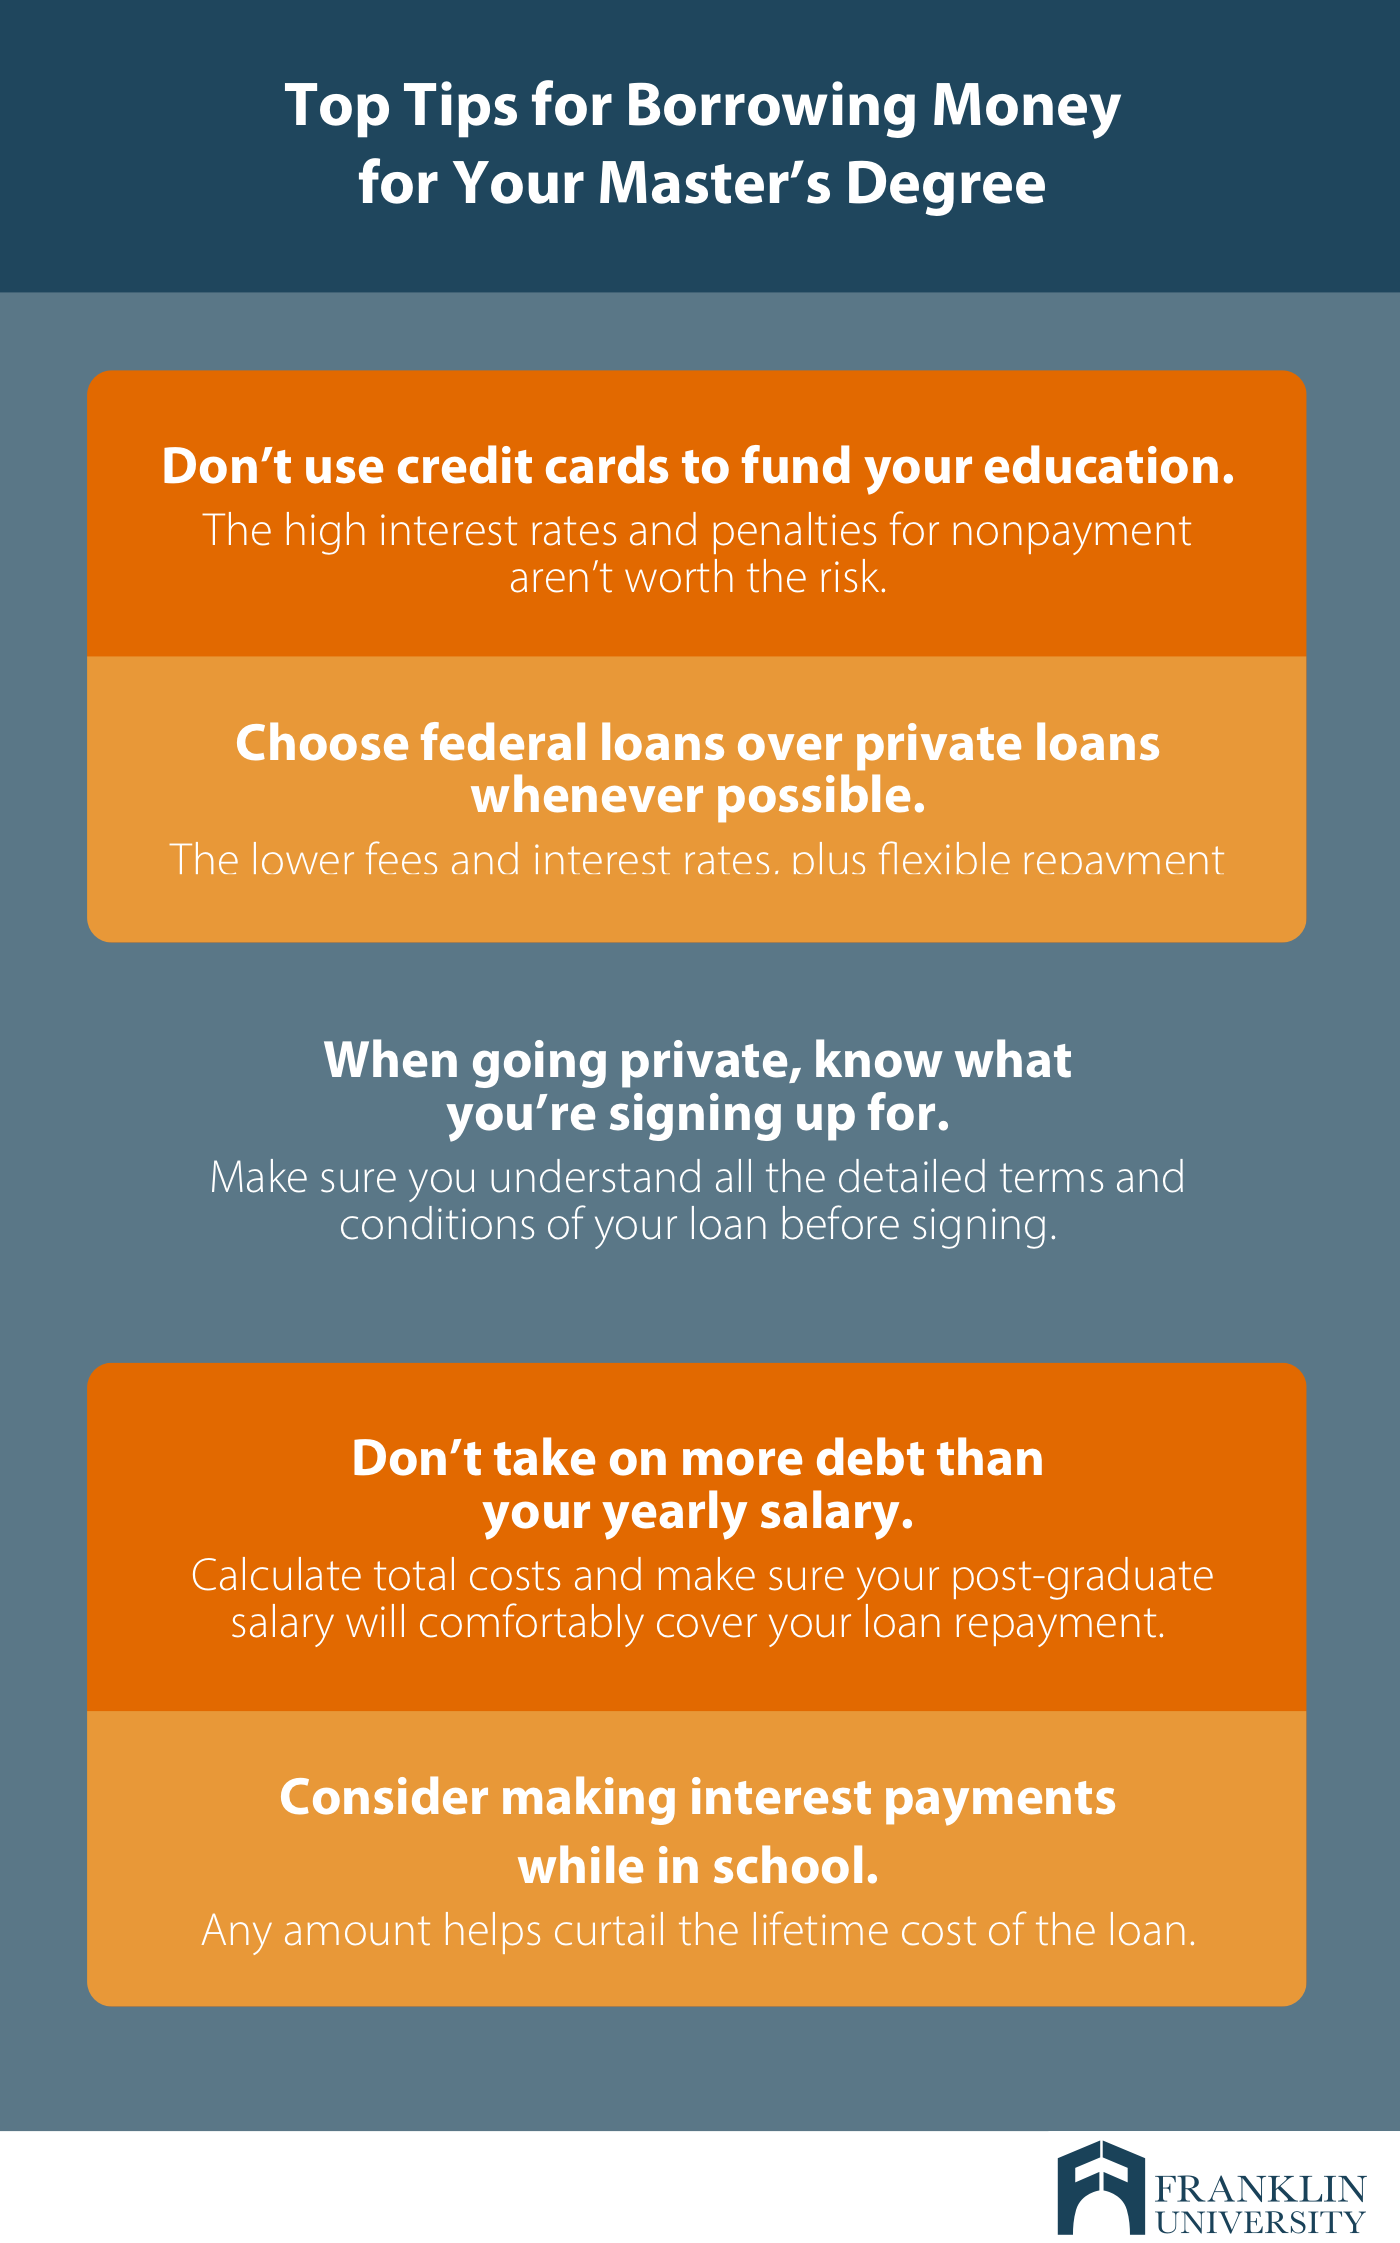 graphic describing the top tips for borrowing money for your masters degree